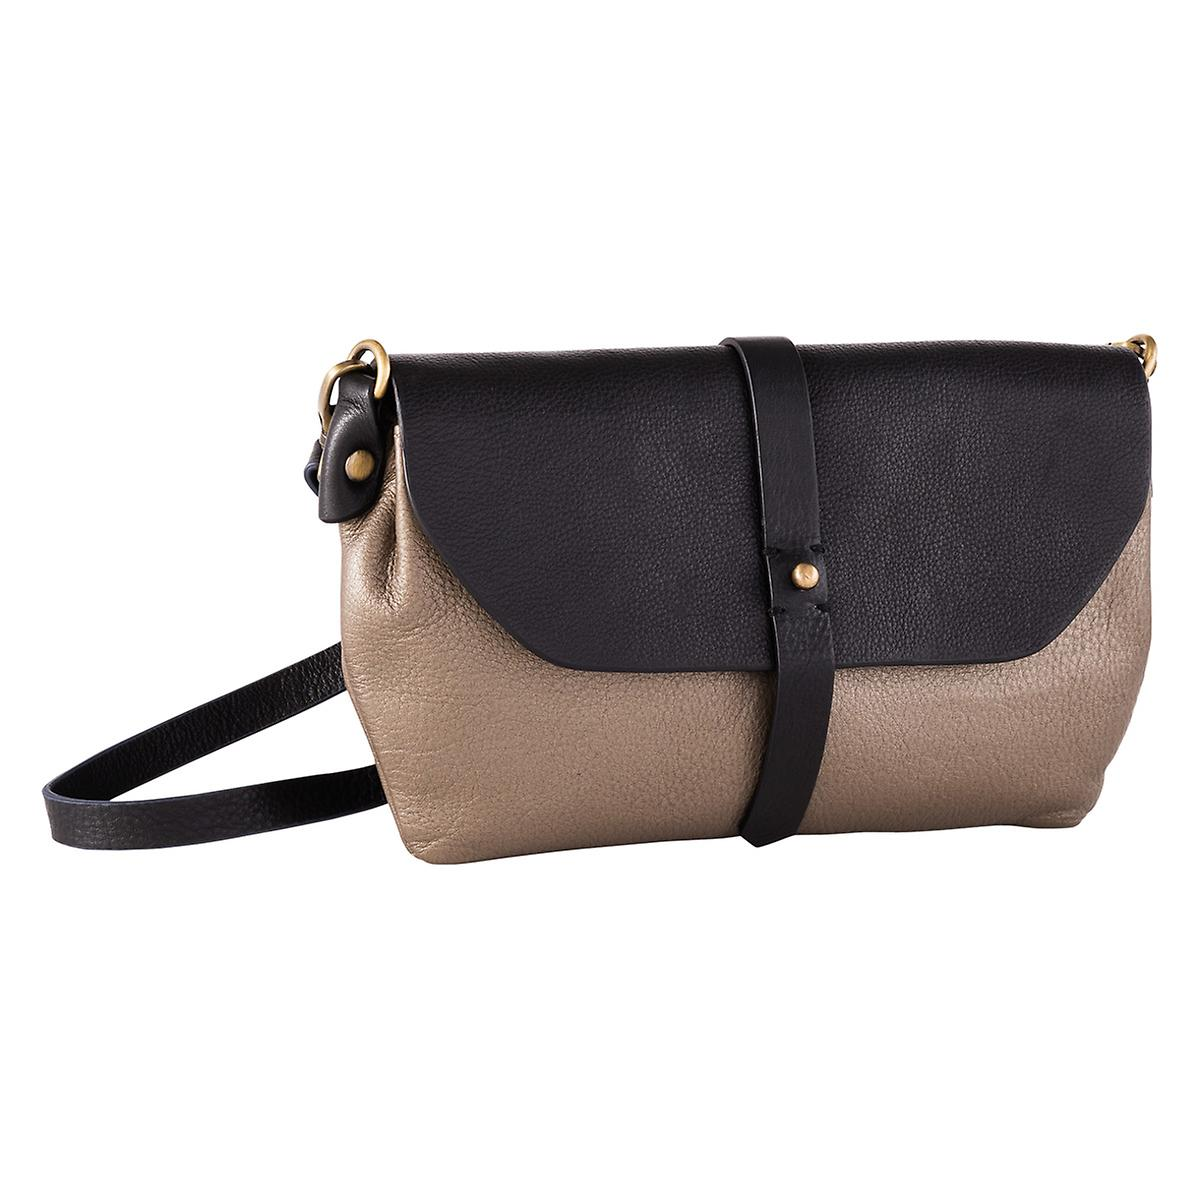 Bronze Primavera Leather Crossbody